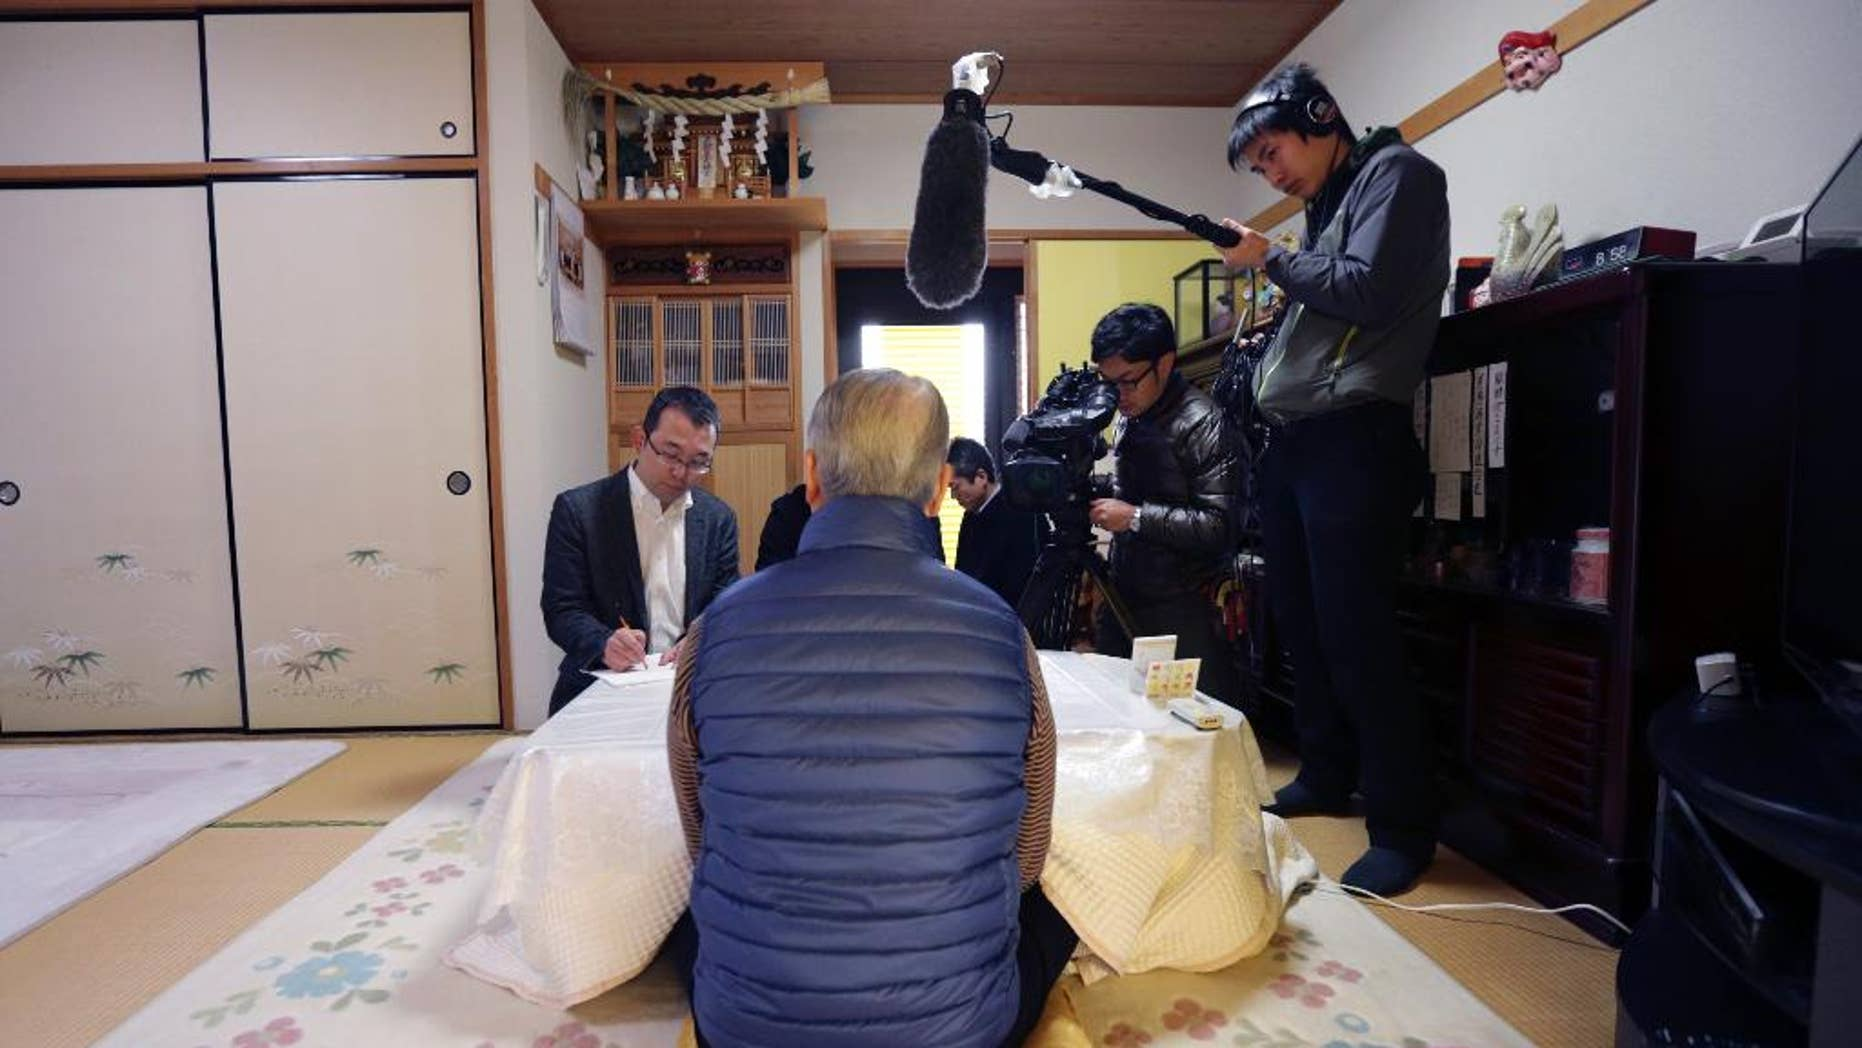 Shoichi Yukawa, center, father of Haruna Yukawa, one of two Japanese hostages held by the Islamic State group, speaks during an interview at his house in Chiba, near Tokyo Sunday, Jan. 25, 2015. Japanese officials are working to verifying a new message purported to be from the Islamic State group holding the hostages. The Associated Press could not verify the contents of the message, which varied greatly from previous videos released by the Islamic State group, which now holds a third of both Syria and Iraq. (AP Photo/Asahi Shimbun, Yasuhiro Sugimoto, Pool)